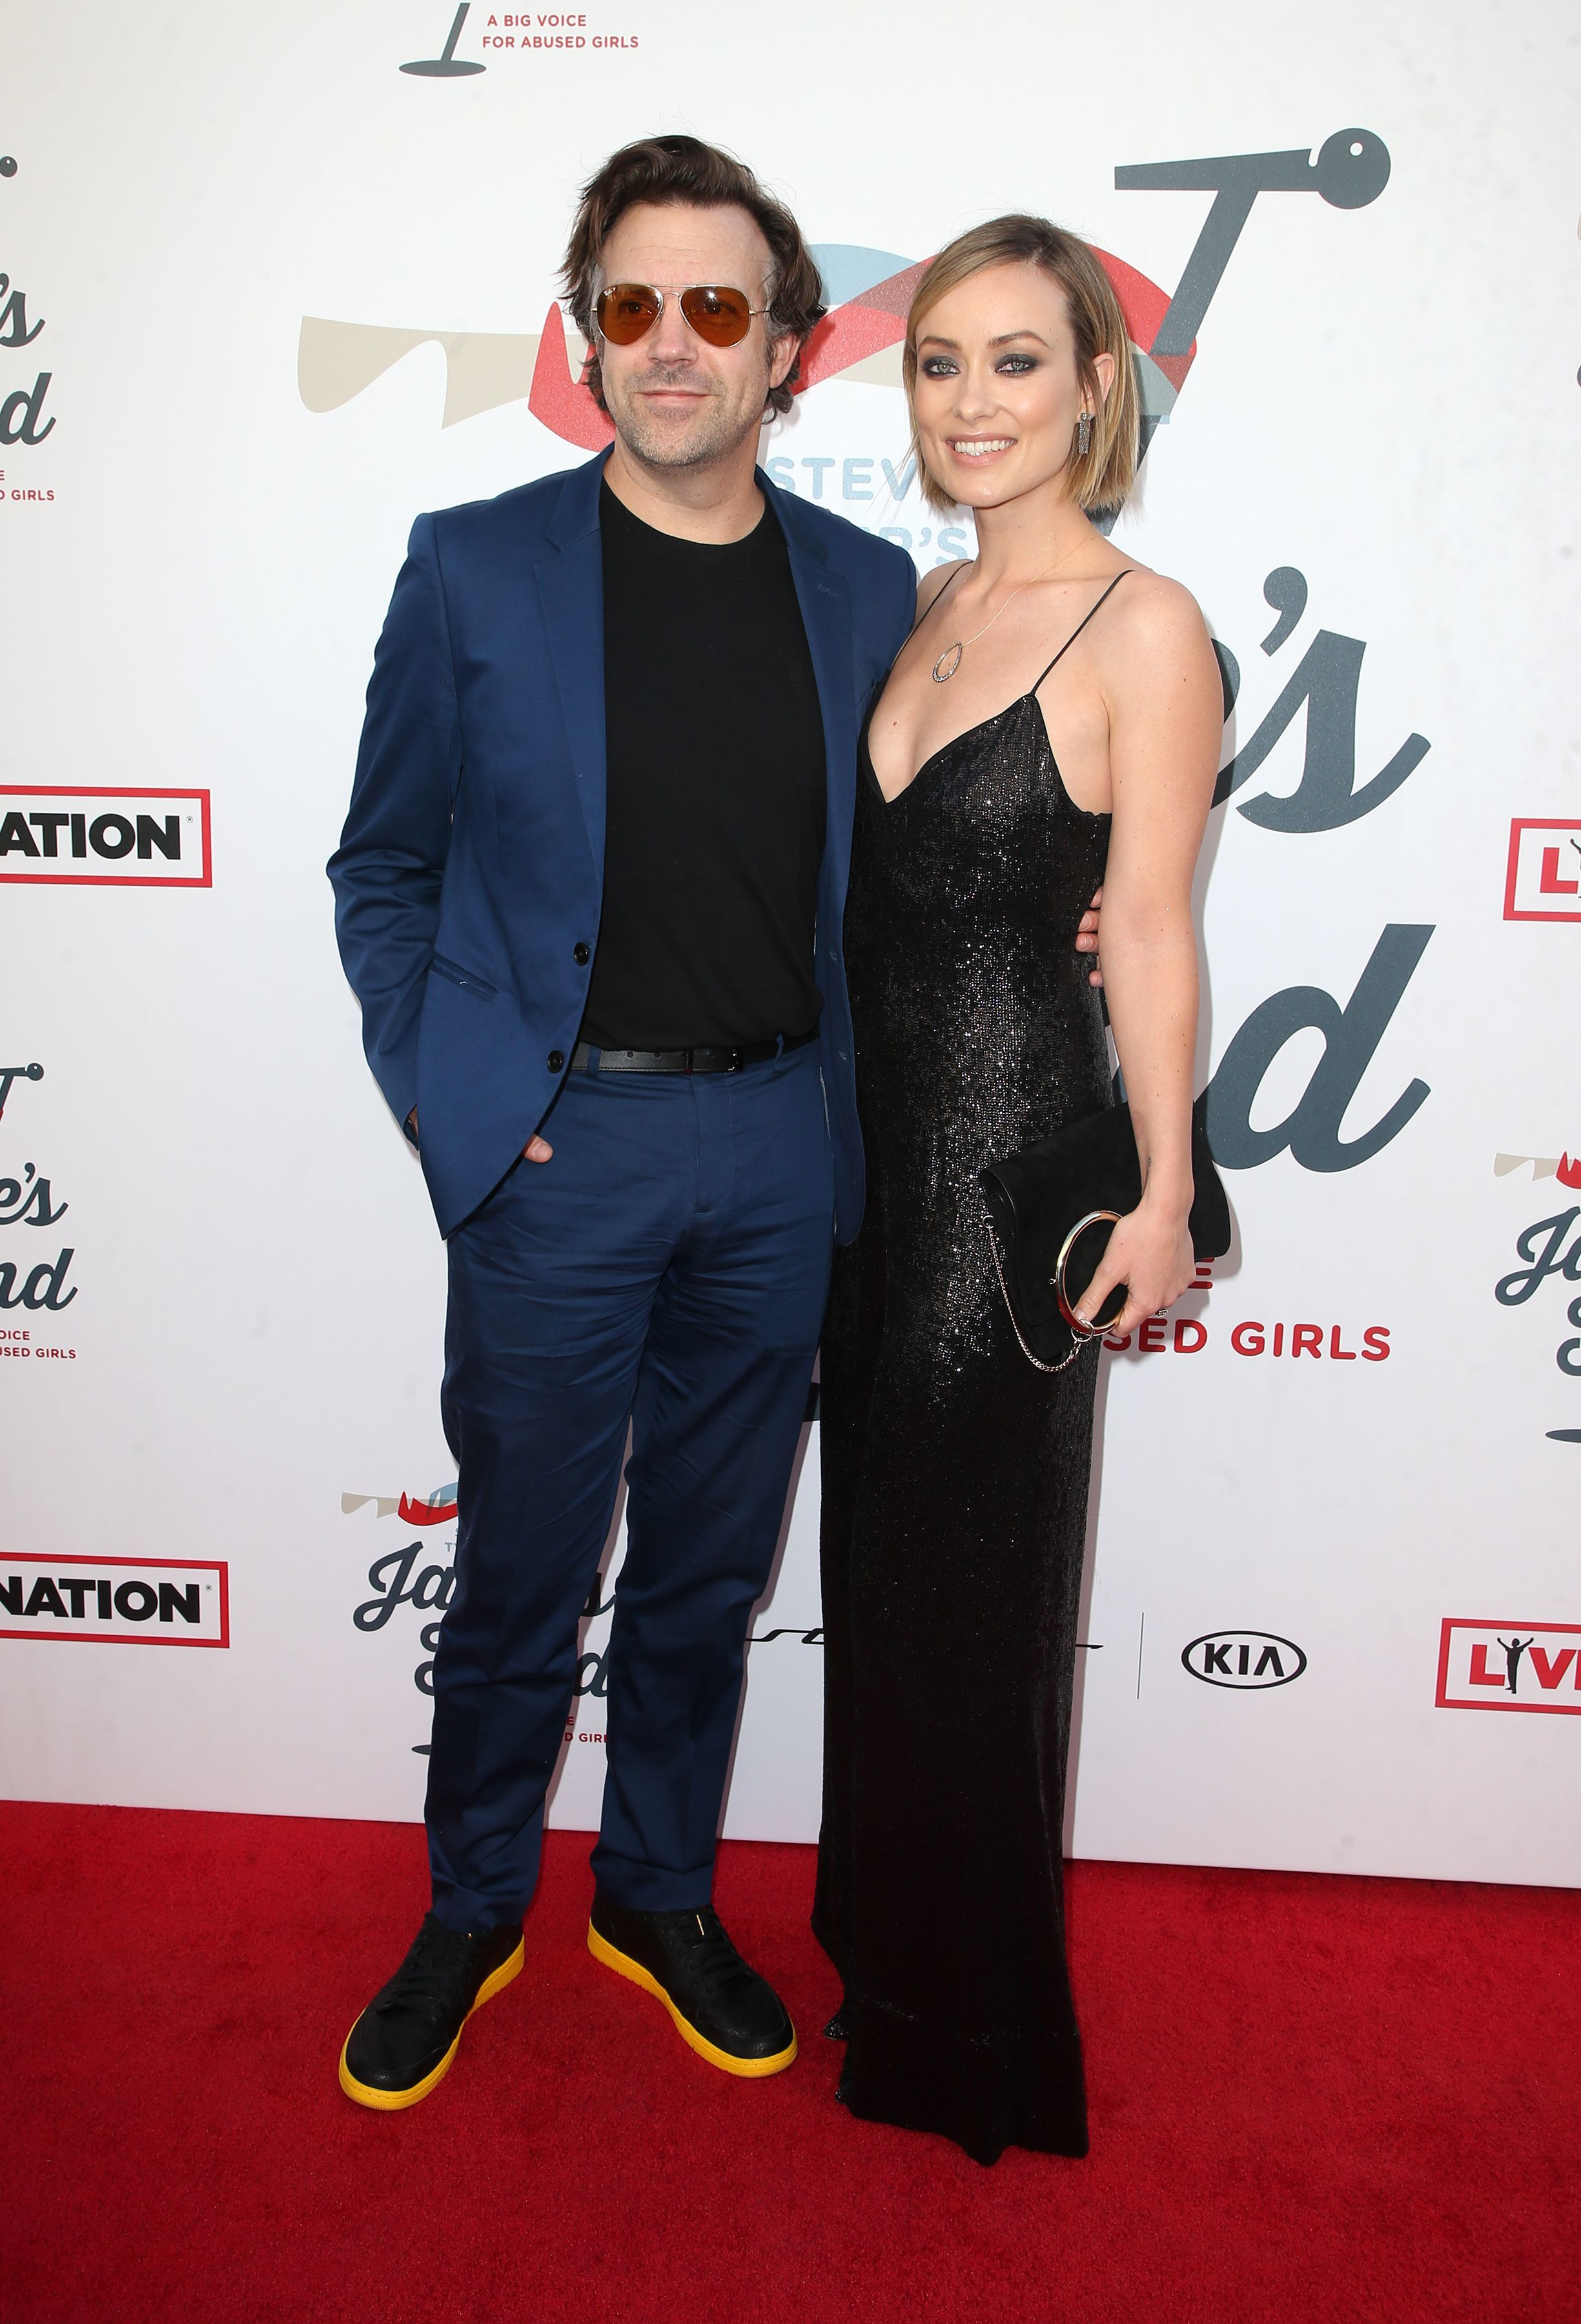 Jason Sudeikis and Olivia Wilde attend the Janie's Fund annual Grammy Awards viewing party in Los Angeles on Jan. 28, 2018.